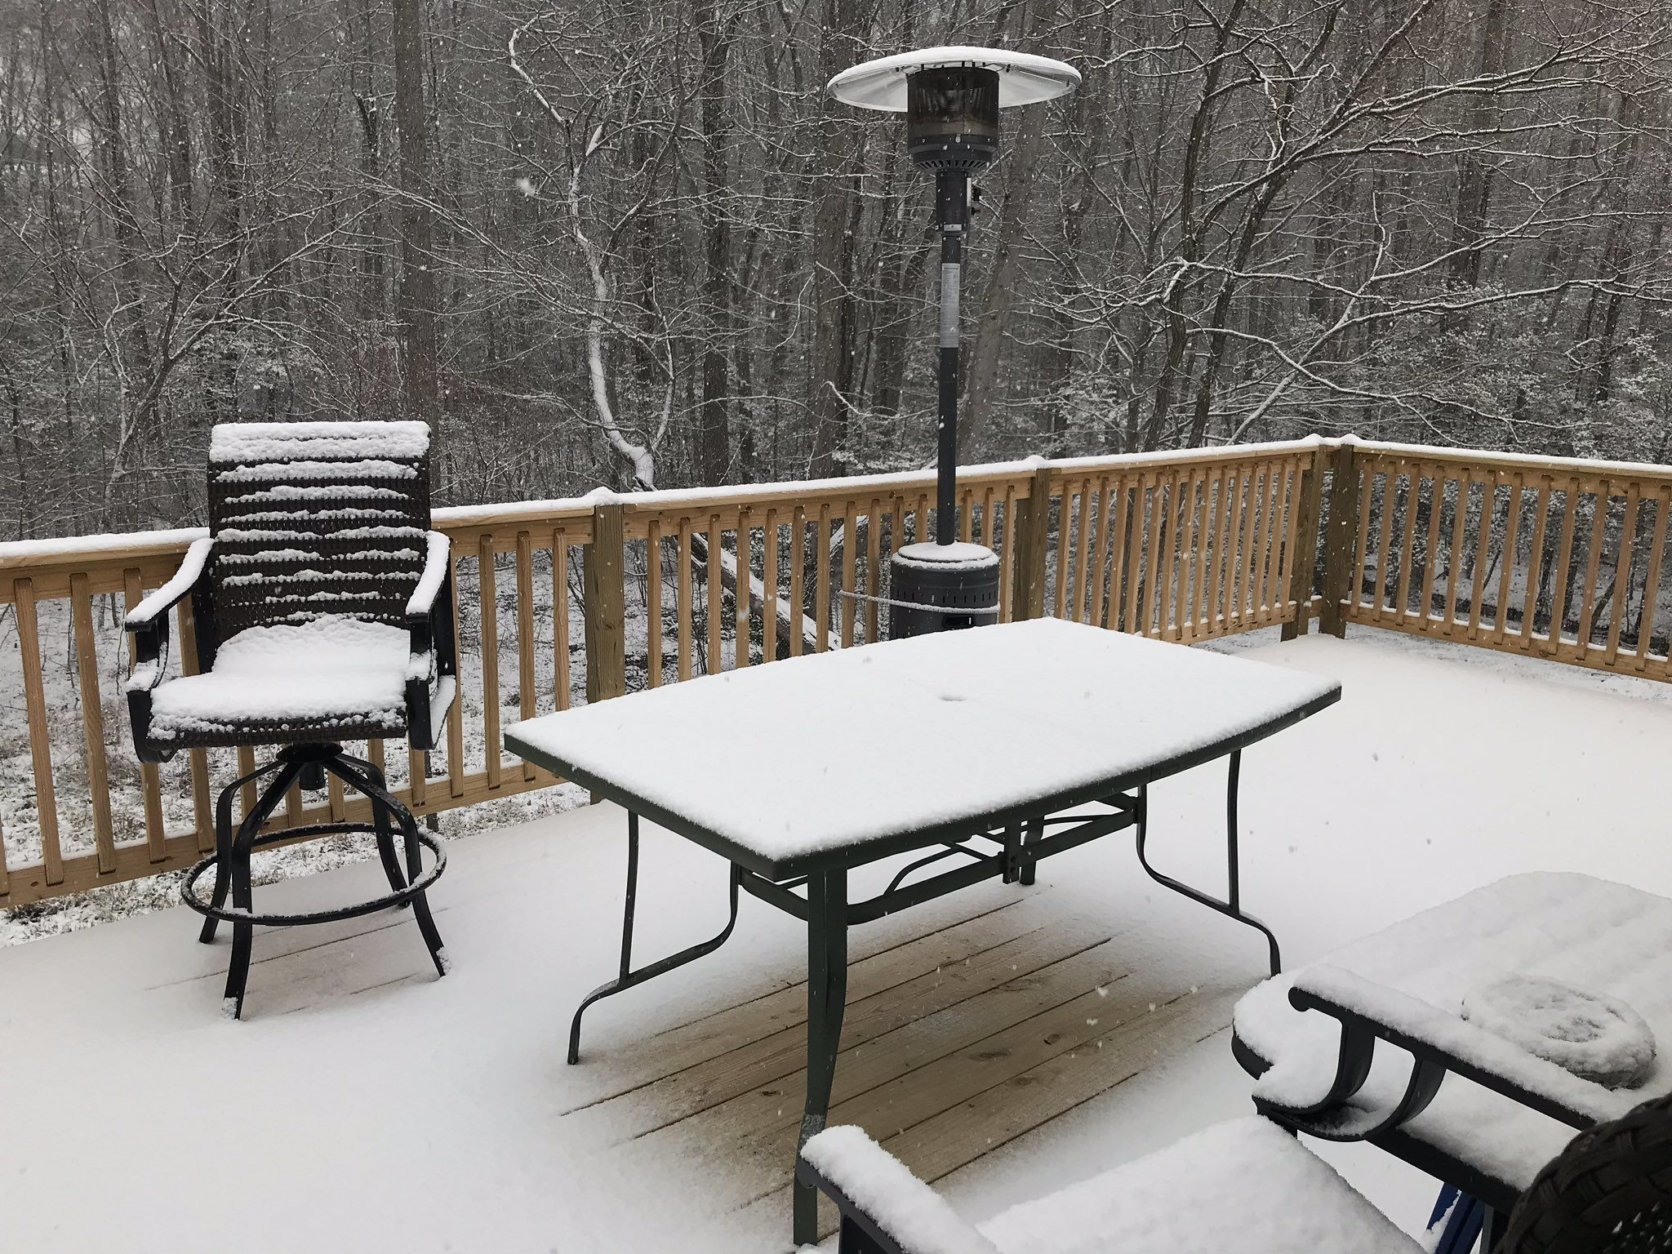 Snow collects in the Prince Frederick/Huntingtown area. (WTOP/Michelle Basch)